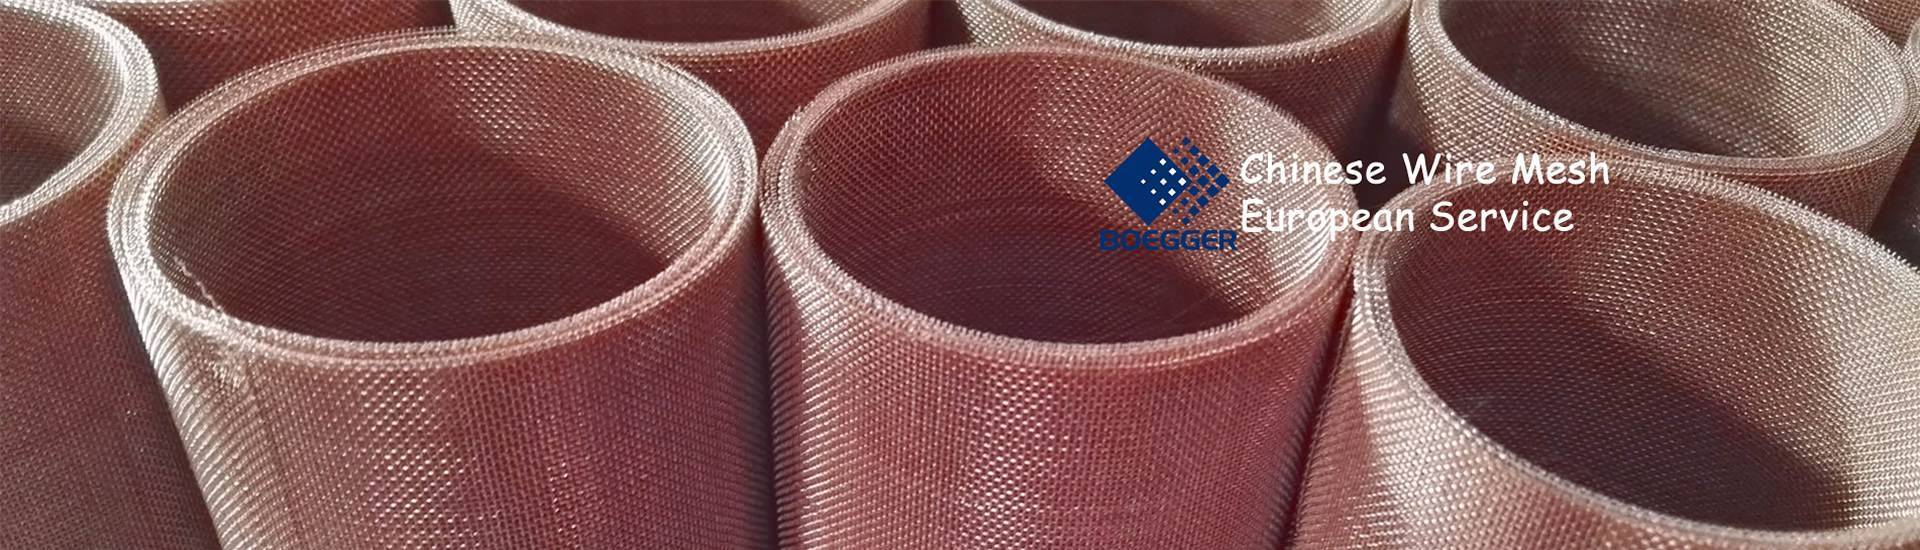 There are several rolls of coarse copper mesh gathering together, the structure is even and surface is bright.